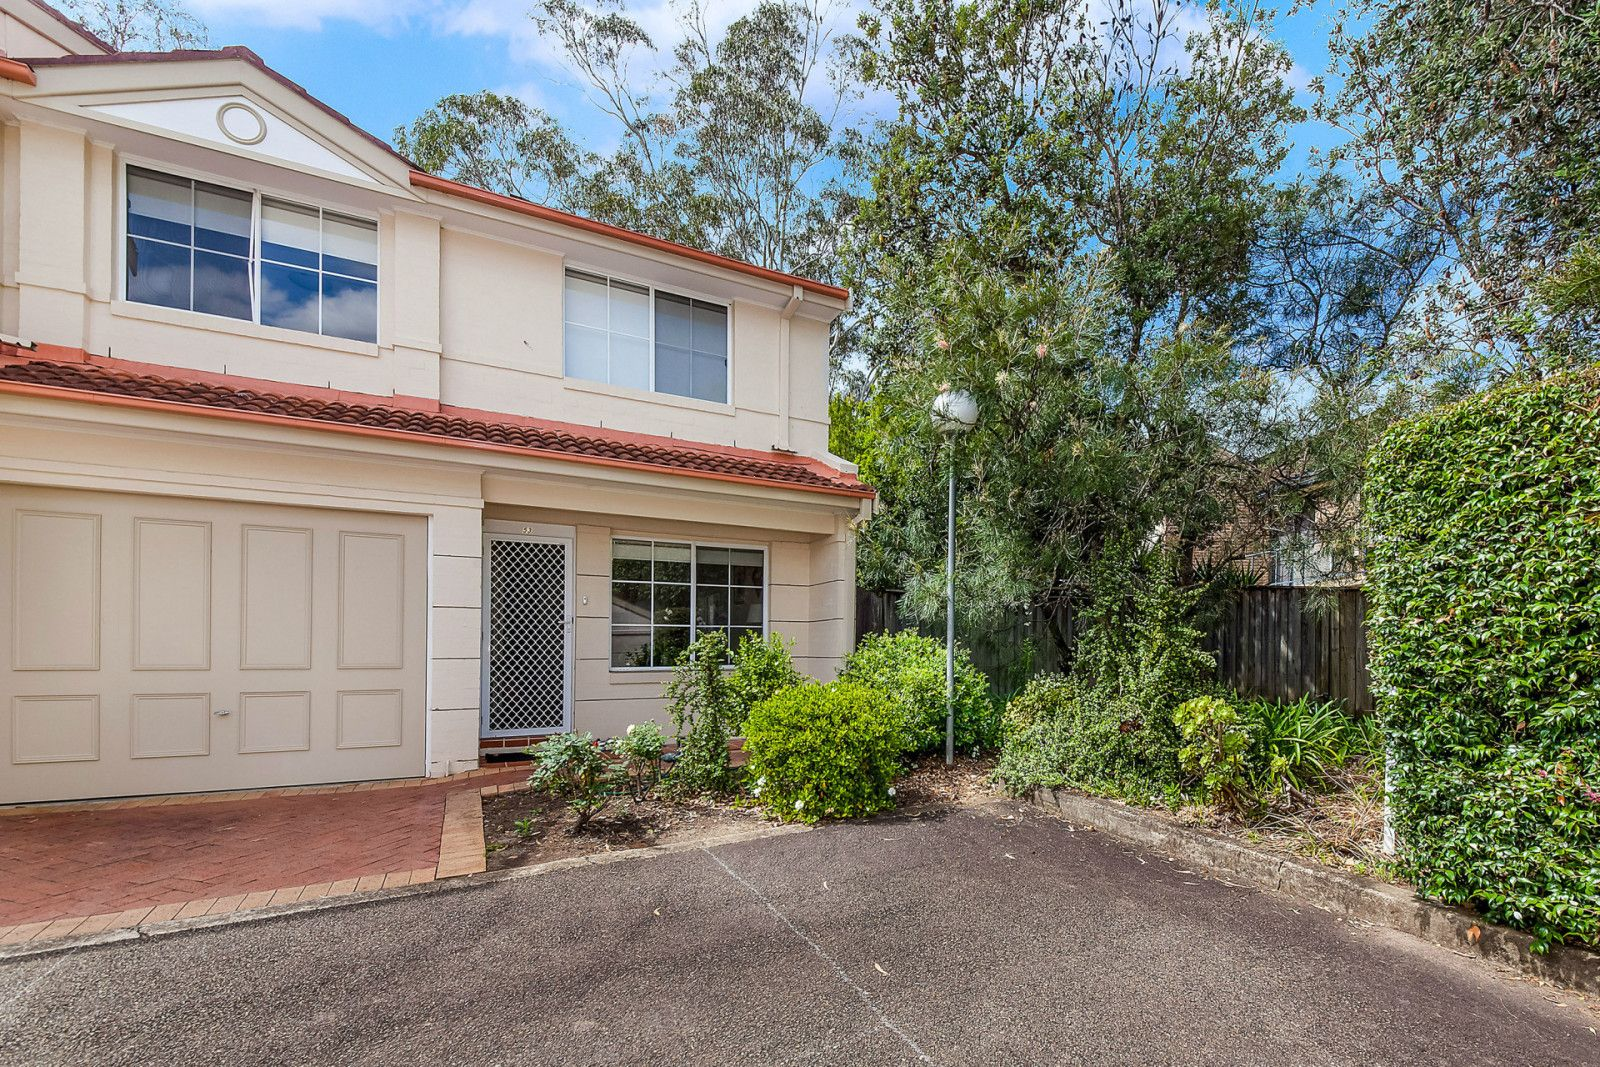 53/1-5 Busaco  Road, Marsfield NSW 2122, Image 0